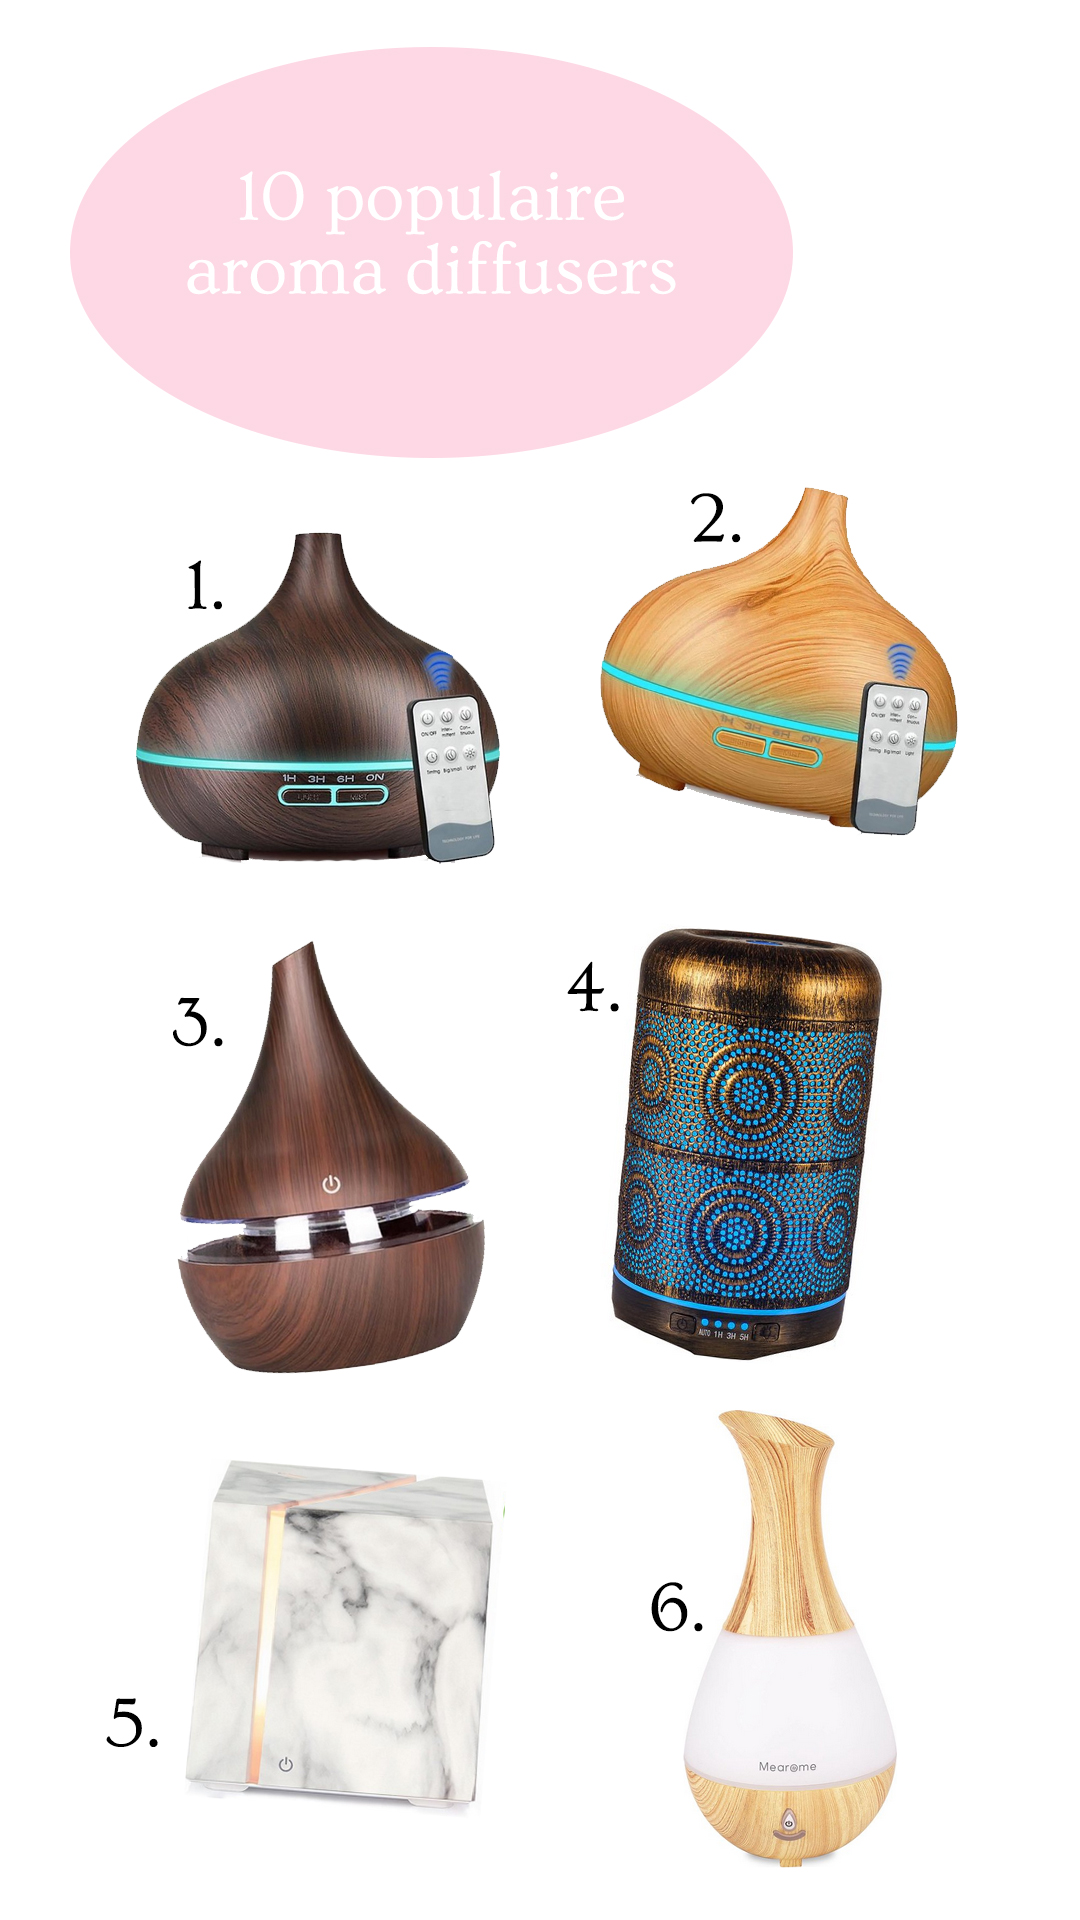 Populaire aroma diffusers